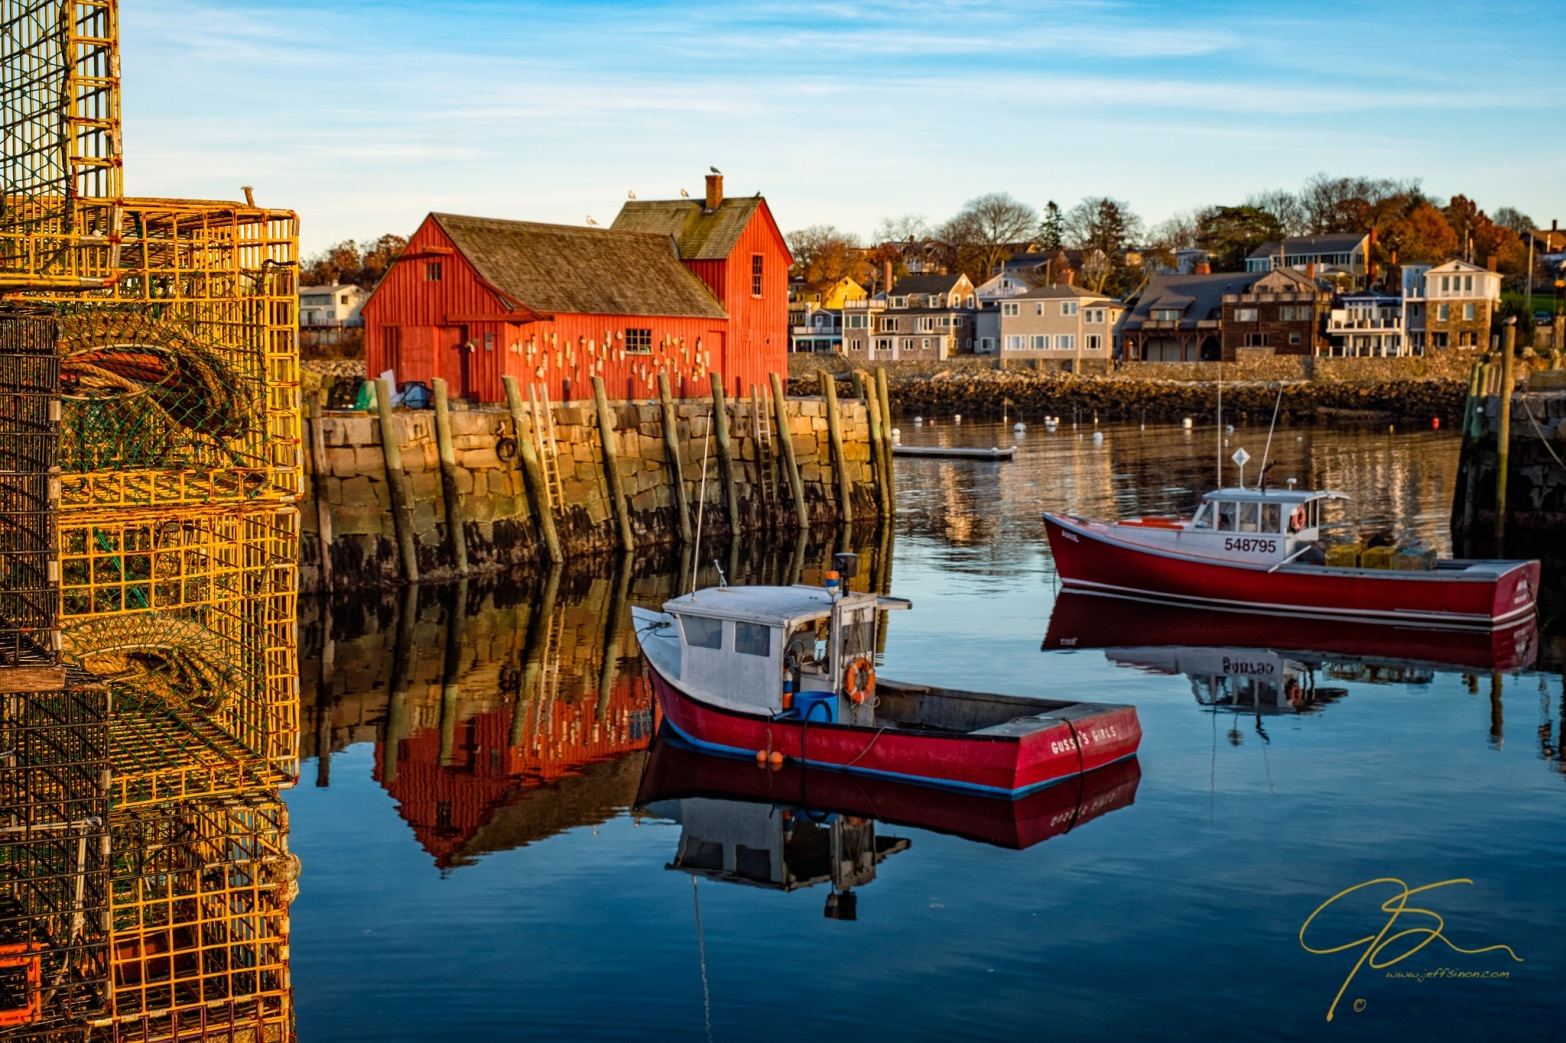 motif no1 with lobster traps and red boats 8444-Edit